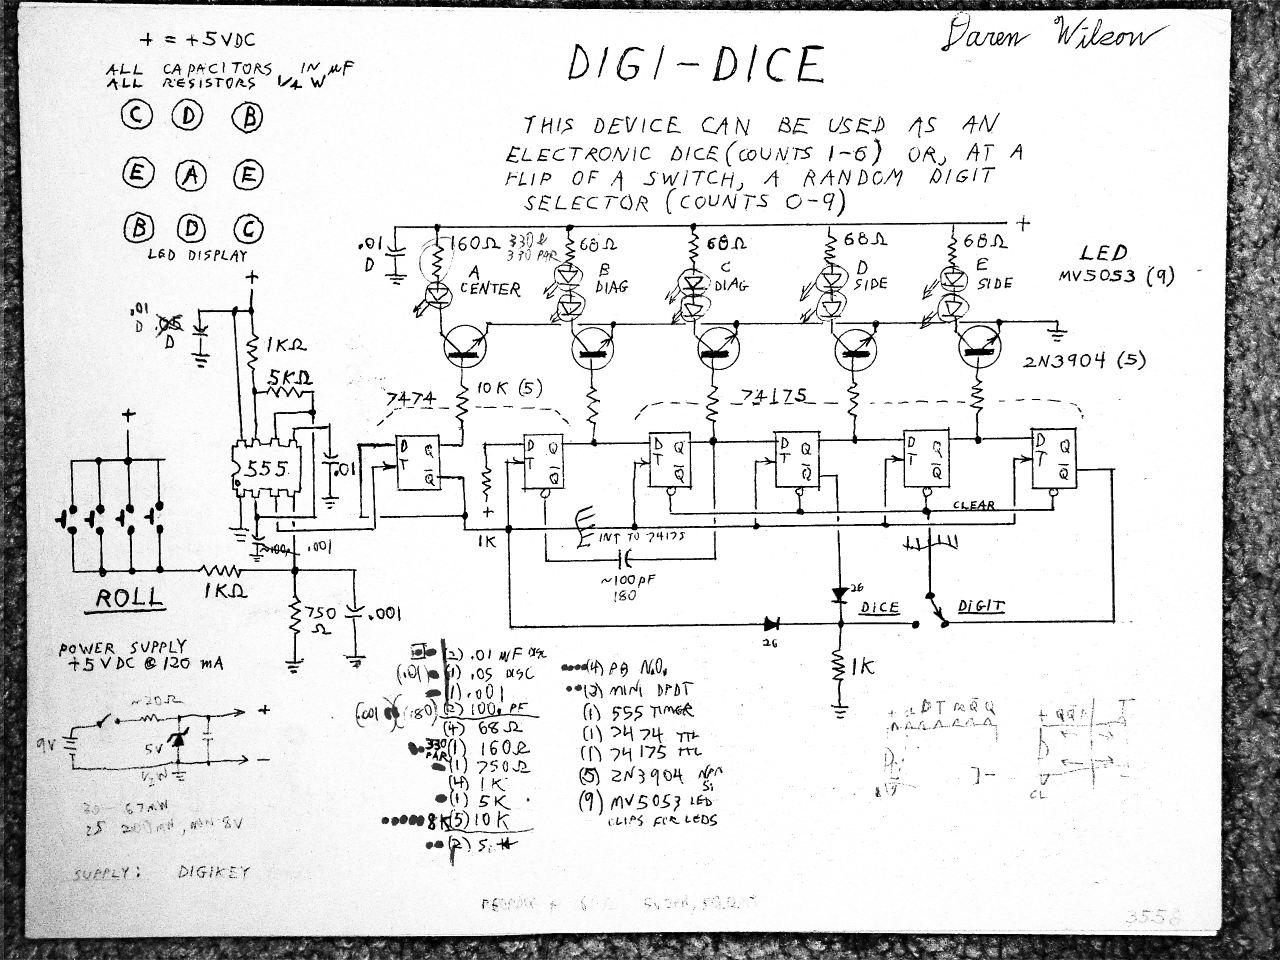 John Deere 180 Wiring Diagram Trusted Schematics Kitchenaid Dishwasher Schematic Pictures Yamaha Xt125